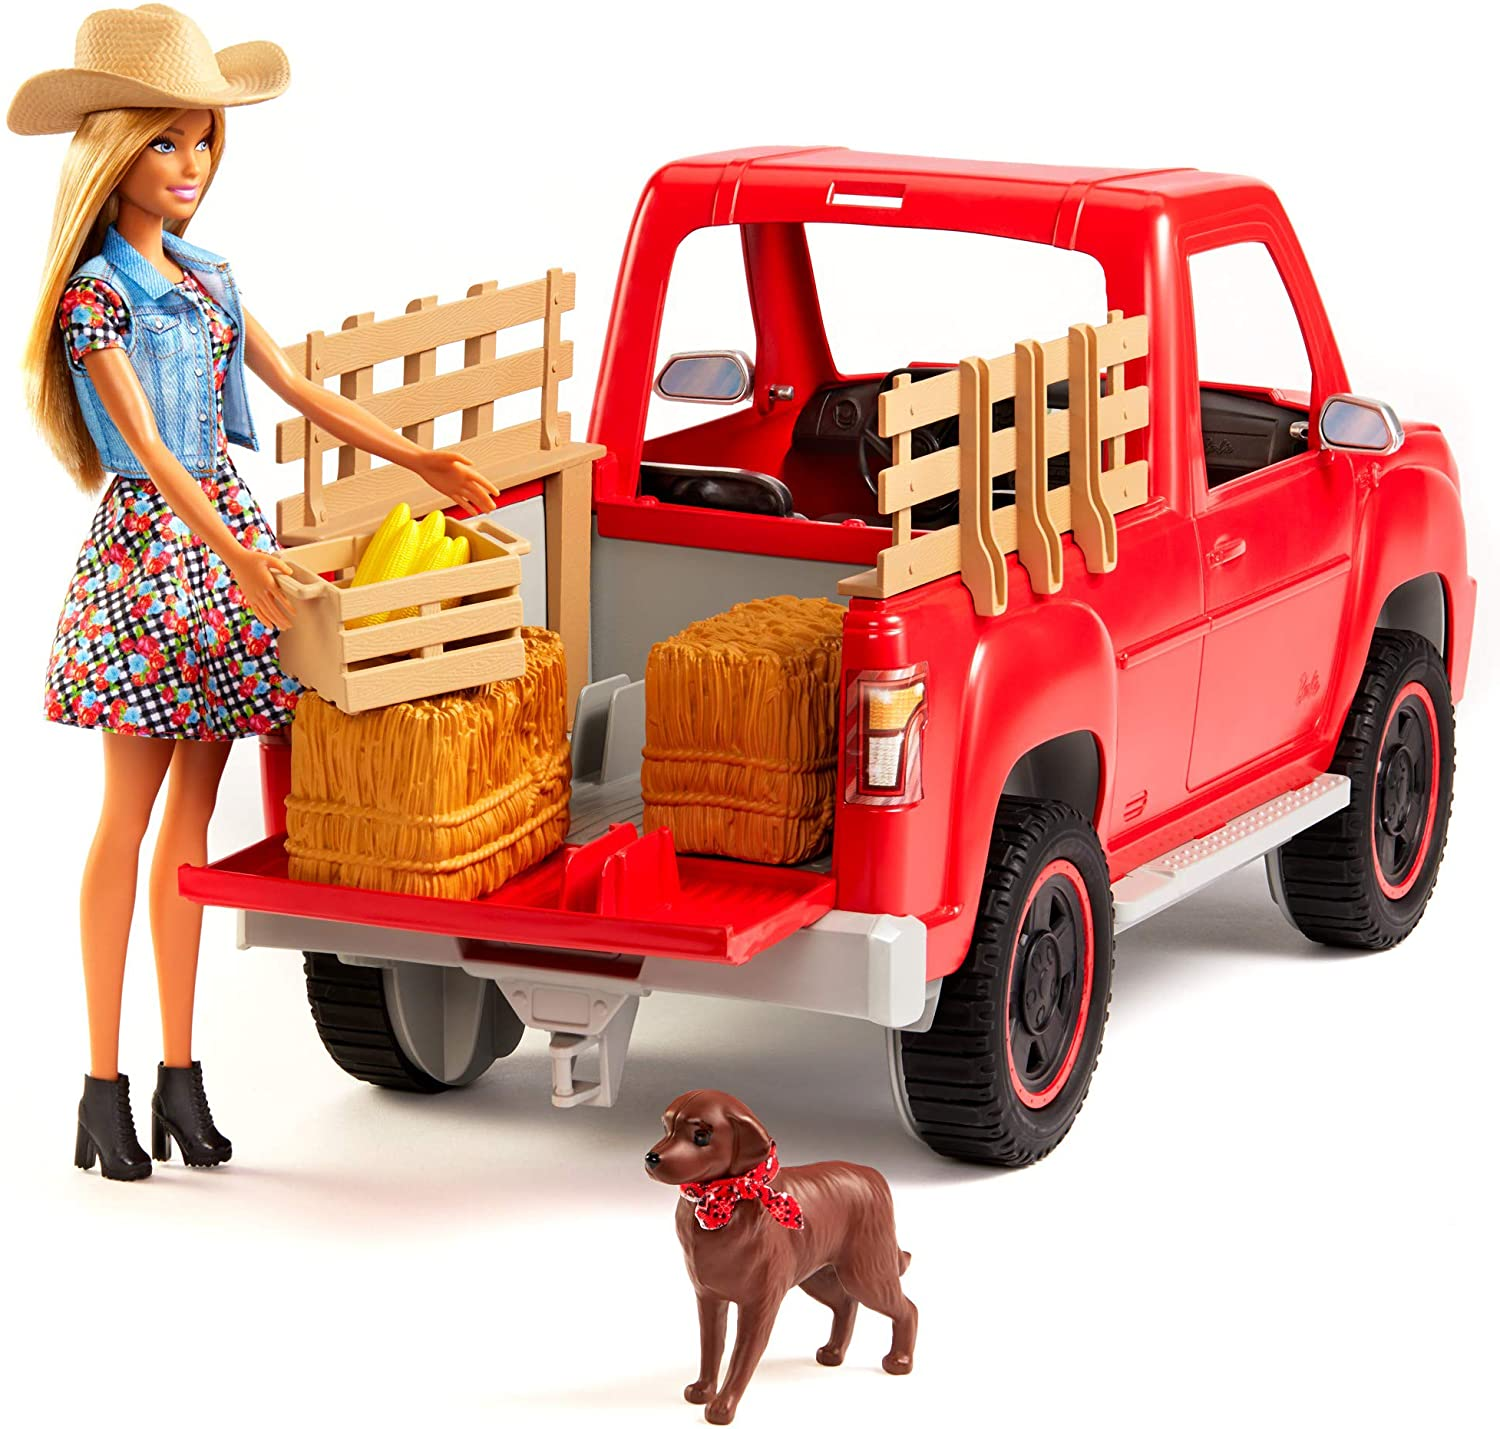 Barbie Sweet Orchard Farm Truck and Doll with Pet Dog, Hay and Crate of Corn, Gift for 3 to 8 Year Olds